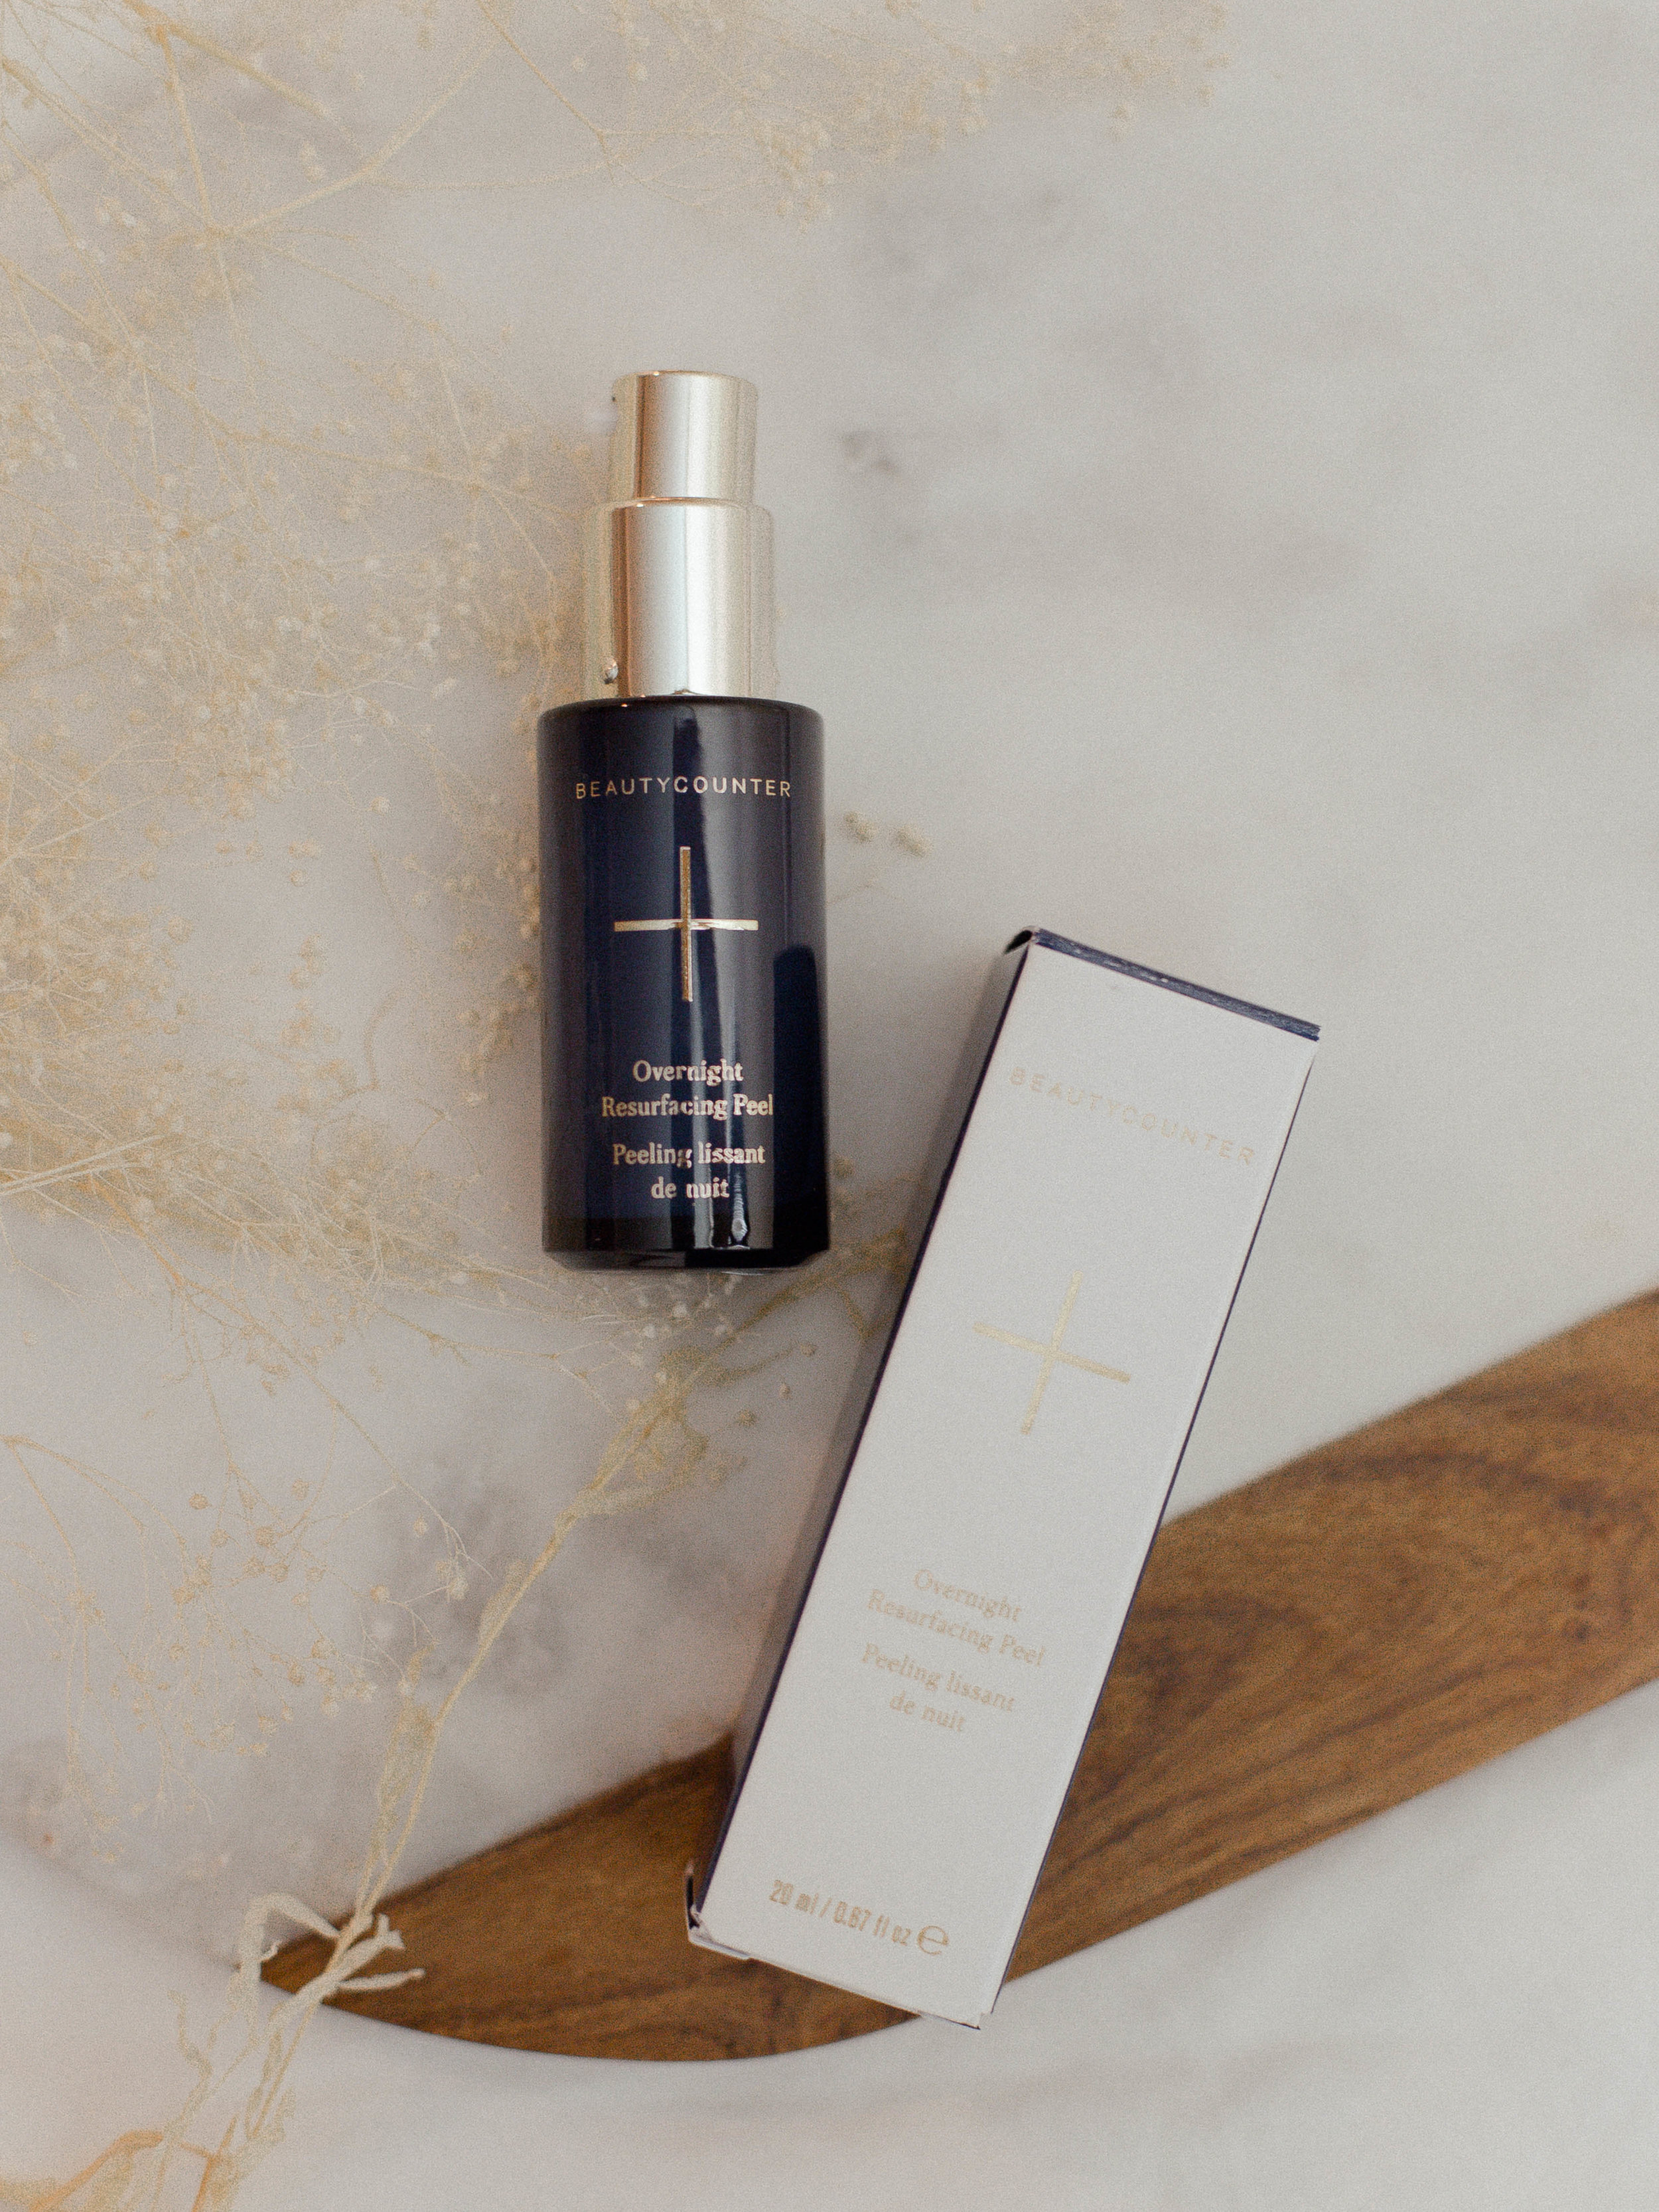 Everything There Is To Know About Beautycounter